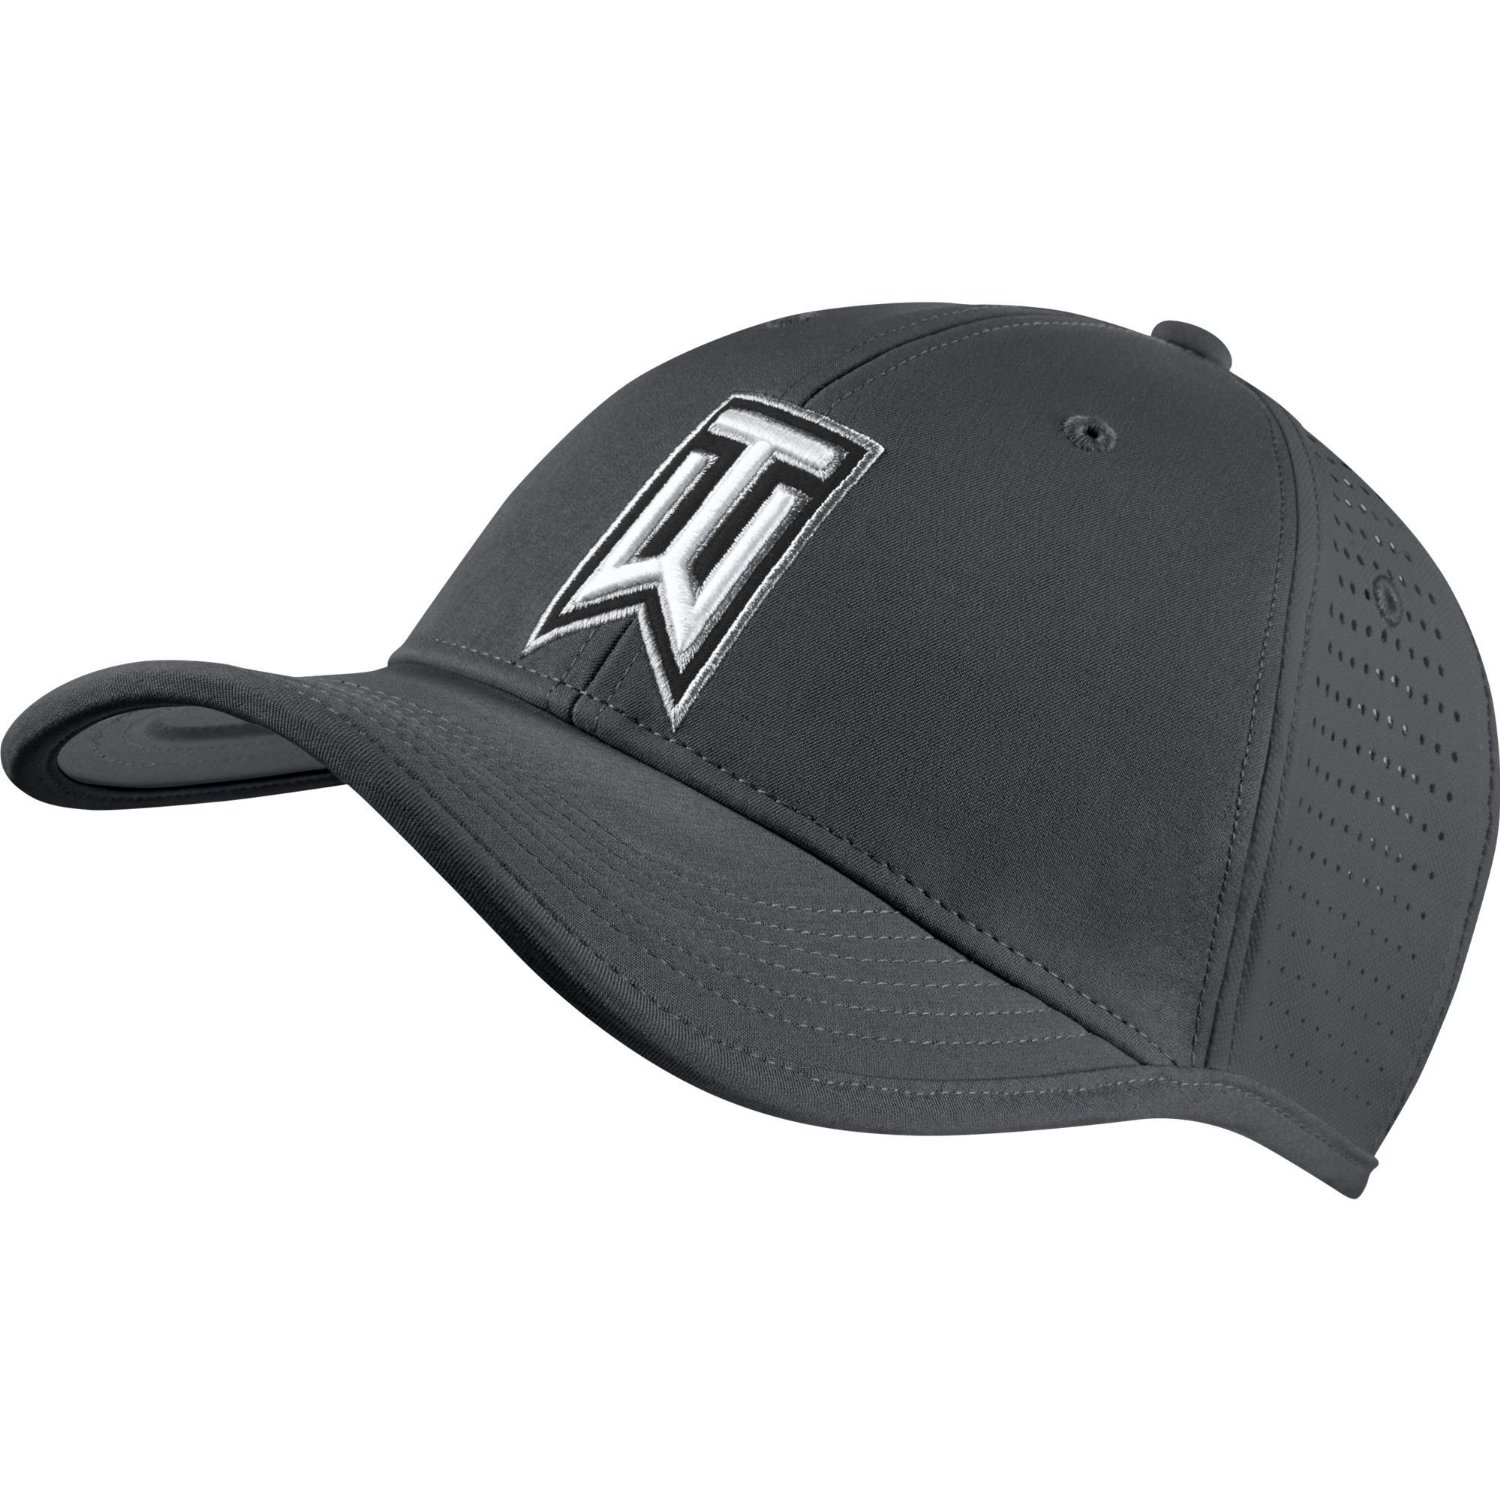 4c4988b62 Buy Nike Ultralight Tour Legacy Mens Adjustable Golf Cap - VRS RZN ...